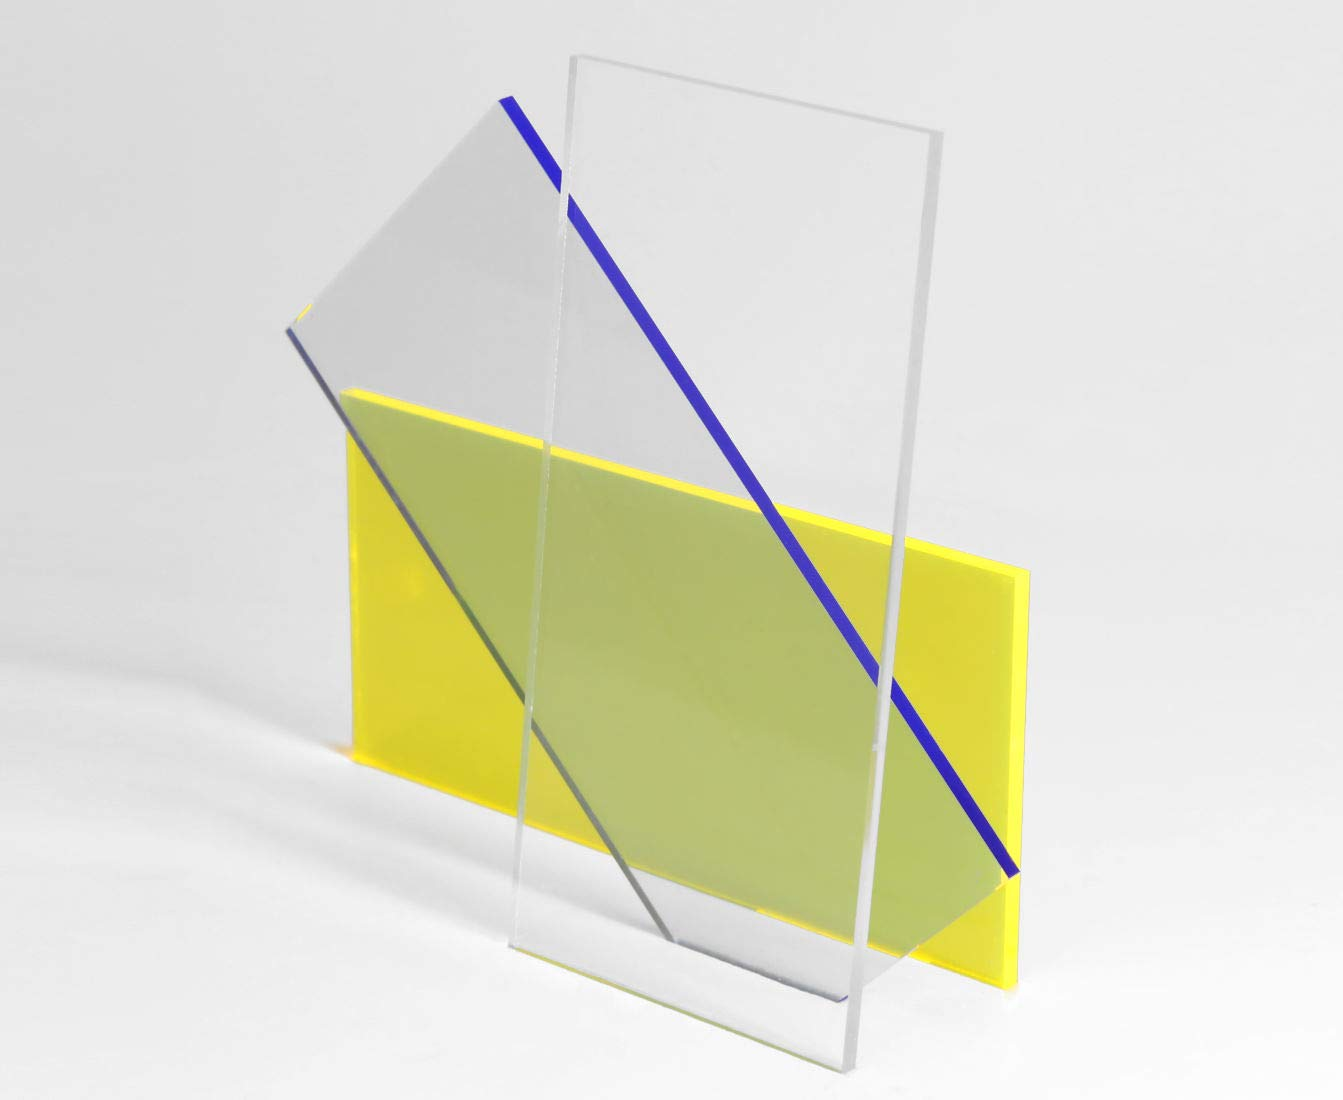 2mm Thick PlasticOnline A5 Size Clear Acrylic Perspex Sheet Panel 148mm x 210mm available thicknesses 2mm 3mm 4mm 5mm 6mm 8mm 10mm